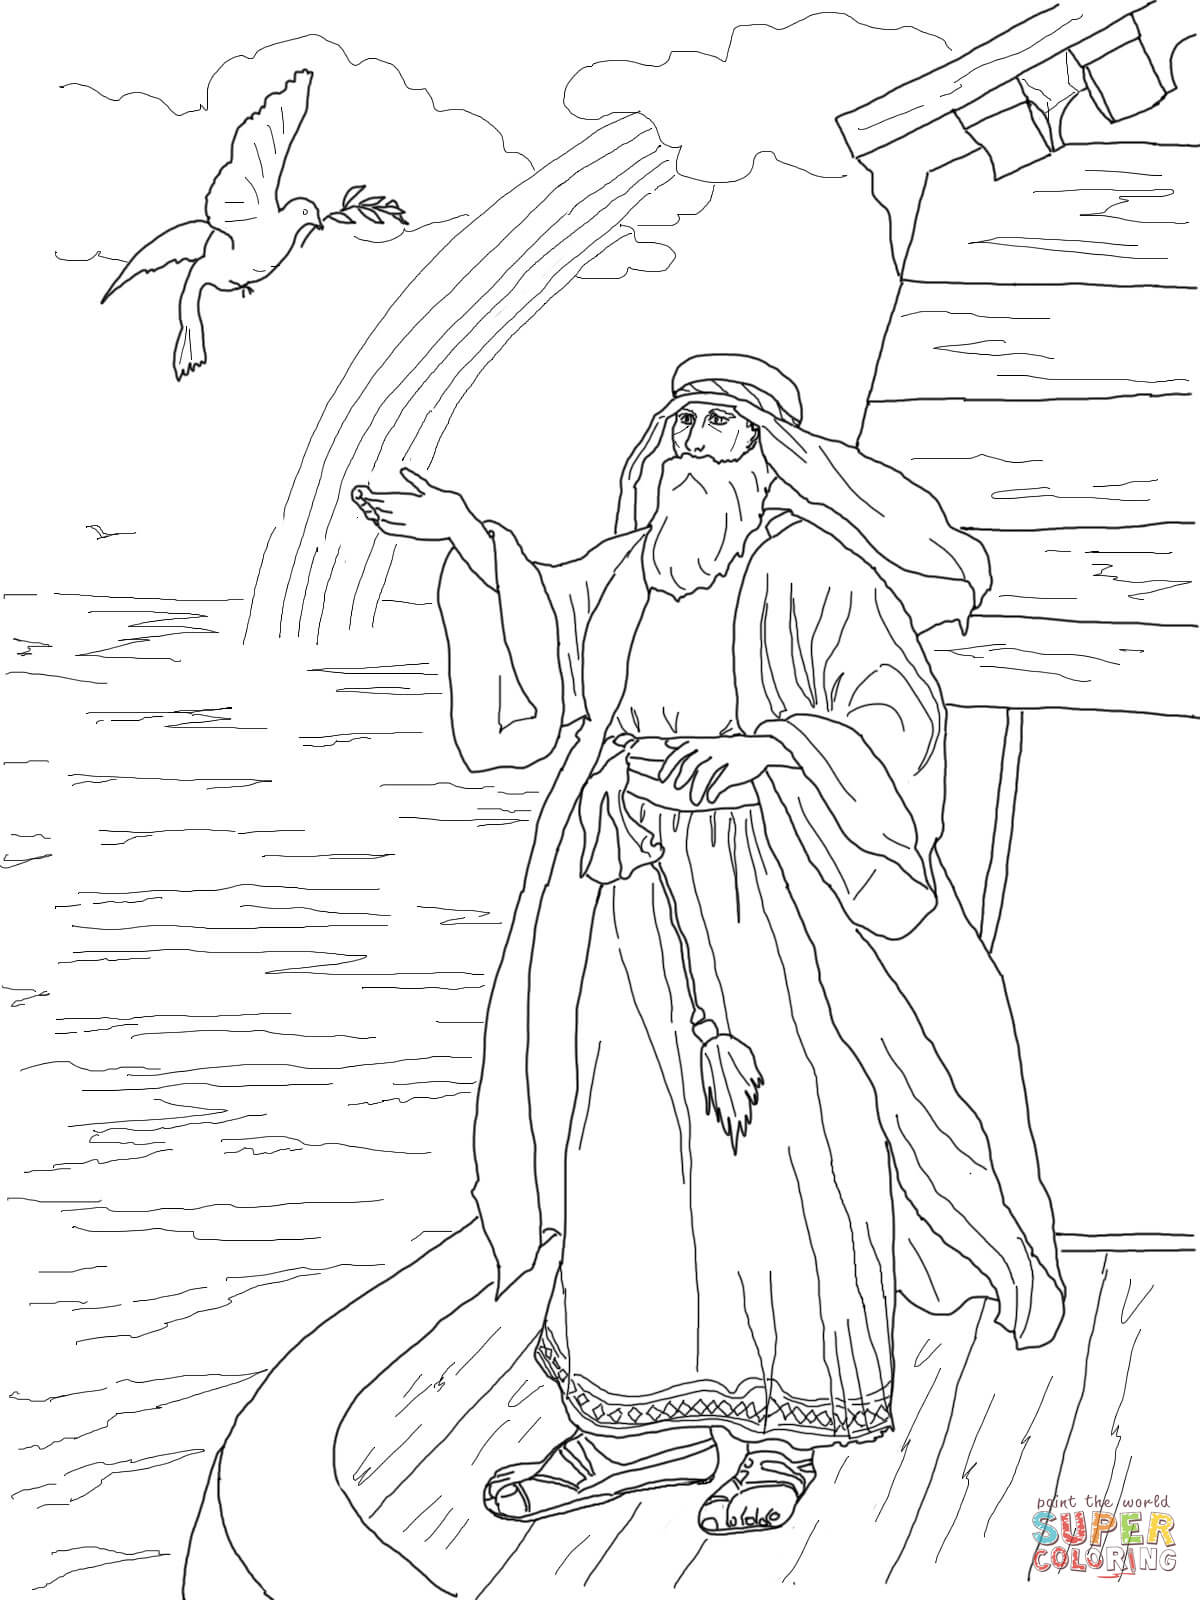 1200x1600 Noah's Dove Returns With The Olive Leaf Coloring Page Free